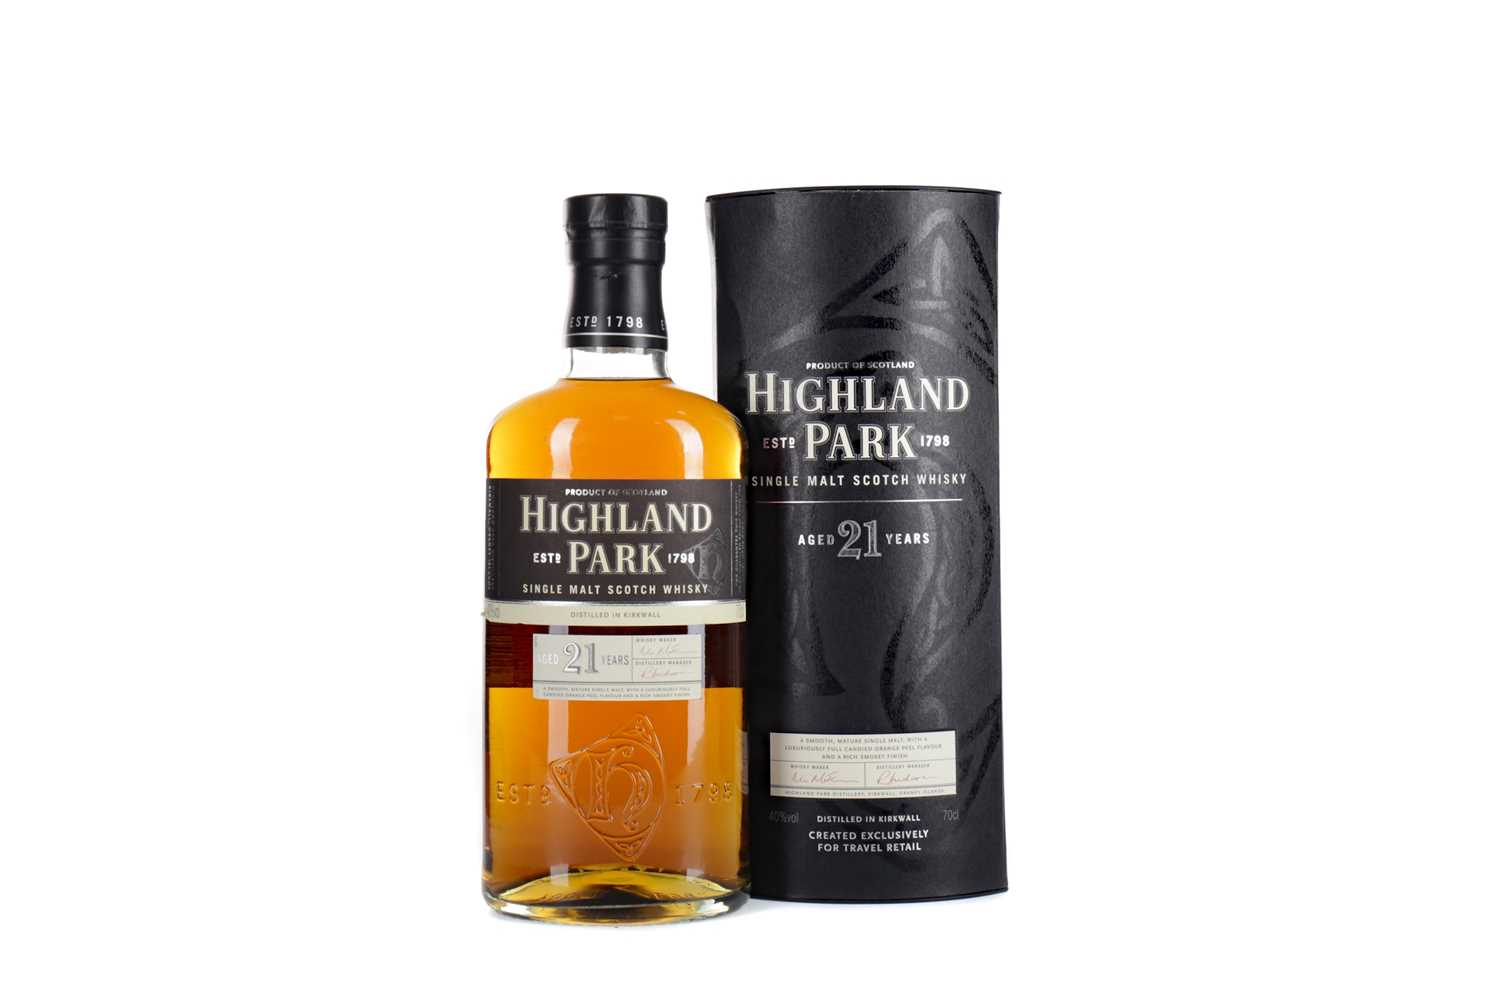 Lot 25 - HIGHLAND PARK AGED 21 YEARS